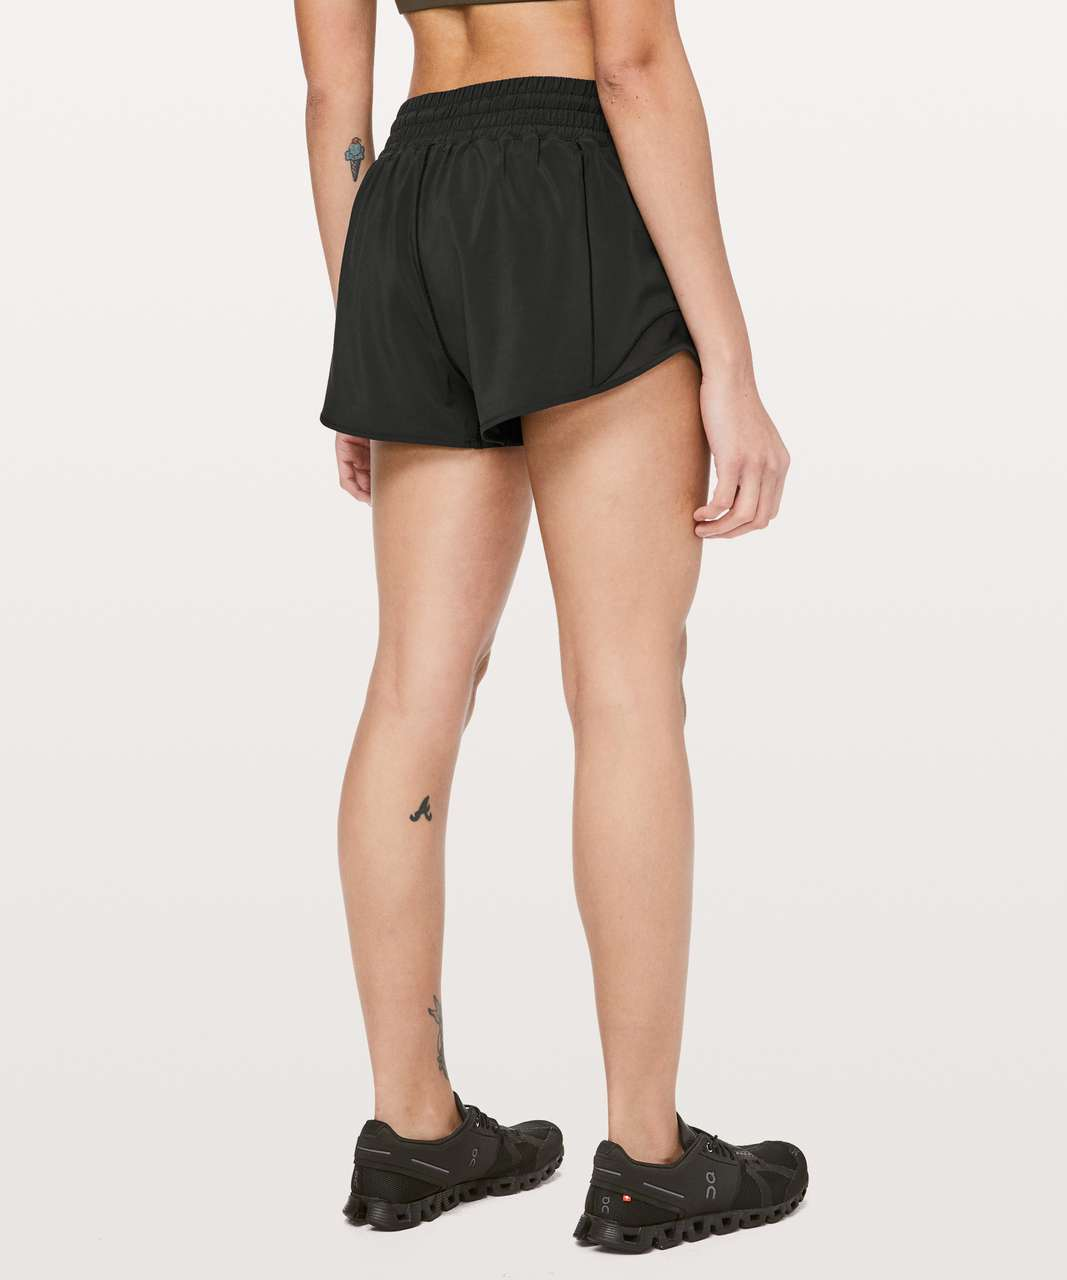 "Lululemon Hotty Hot Short *High-Rise 2.5"" - Black"